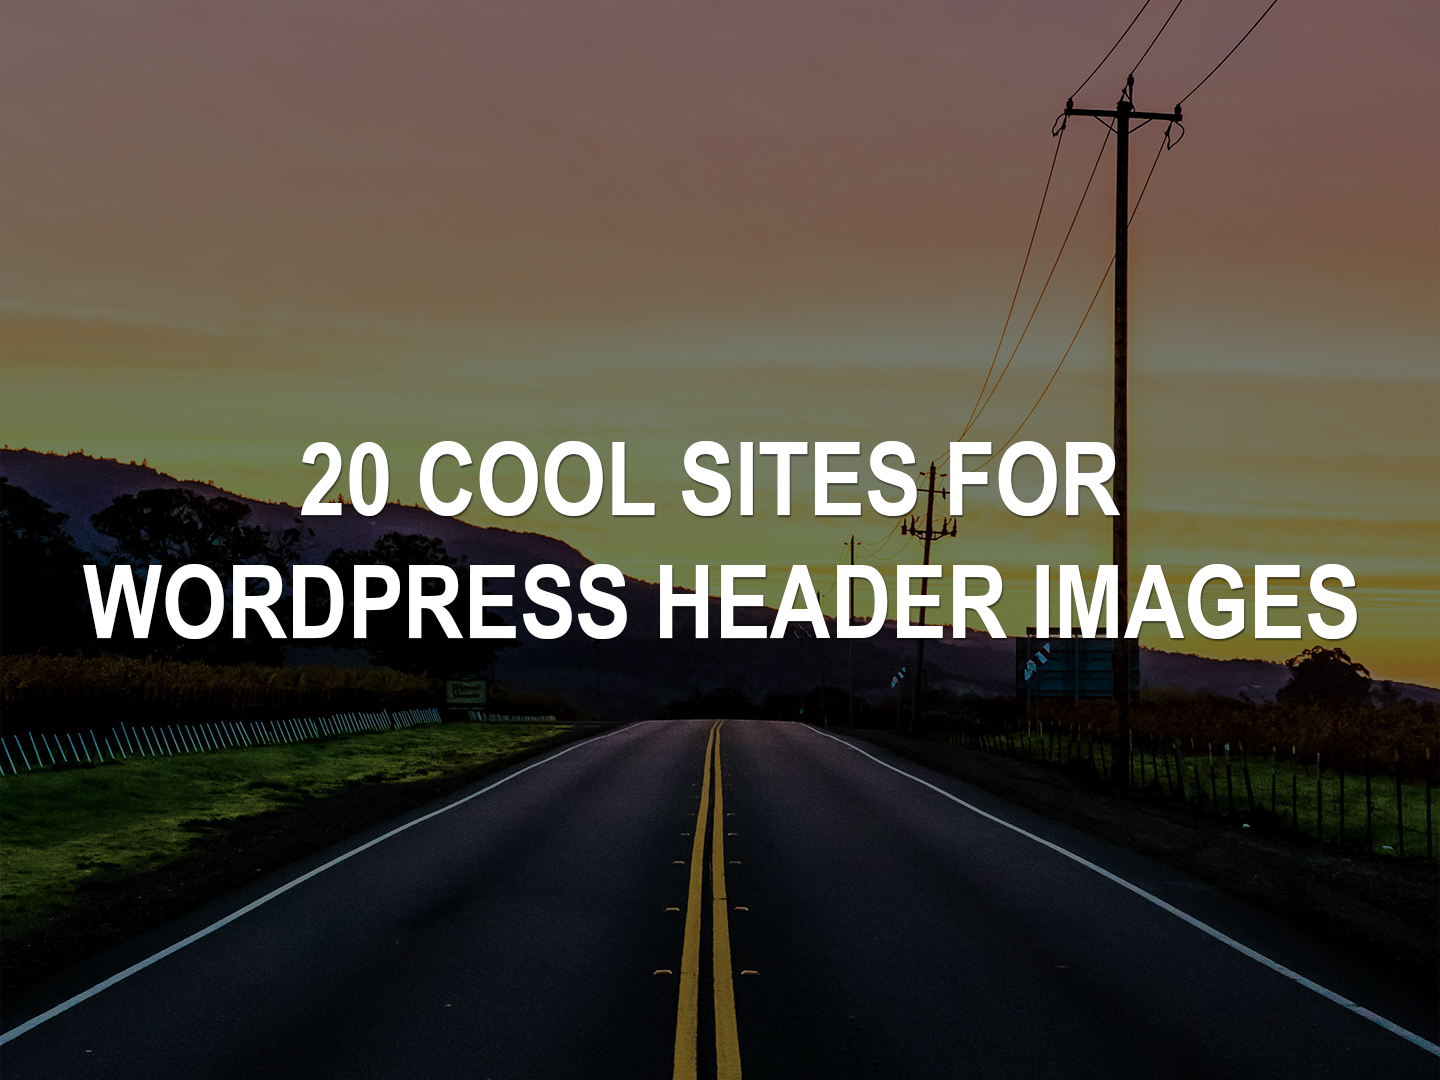 20 Websites For WordPress Header Images